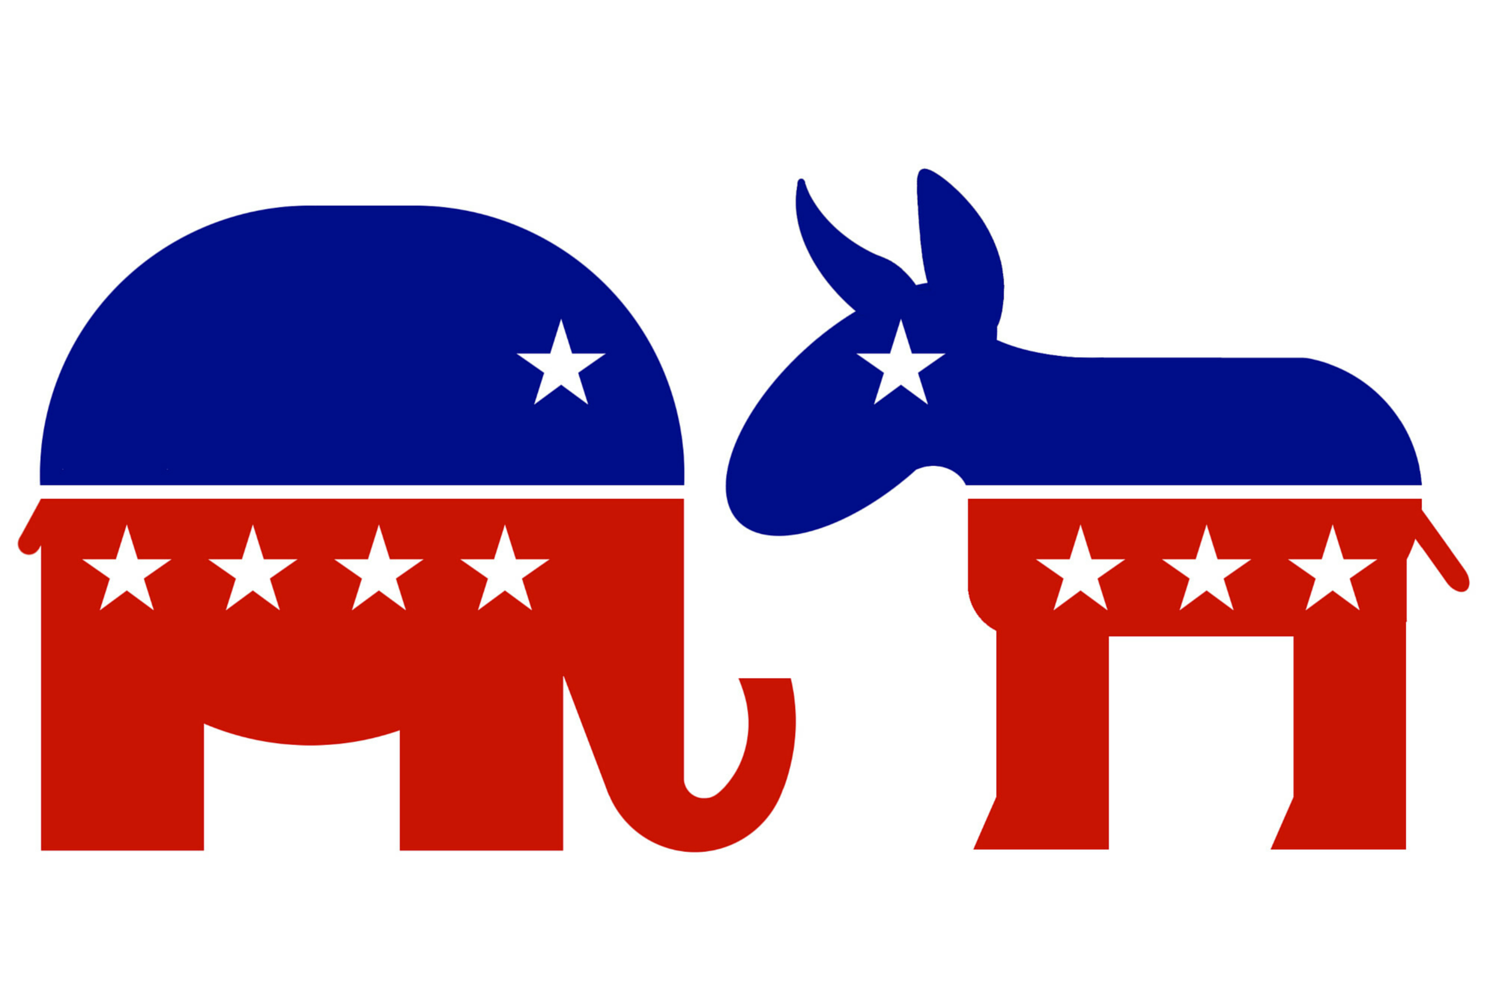 Voting clipart legislative leader. Collection of political free